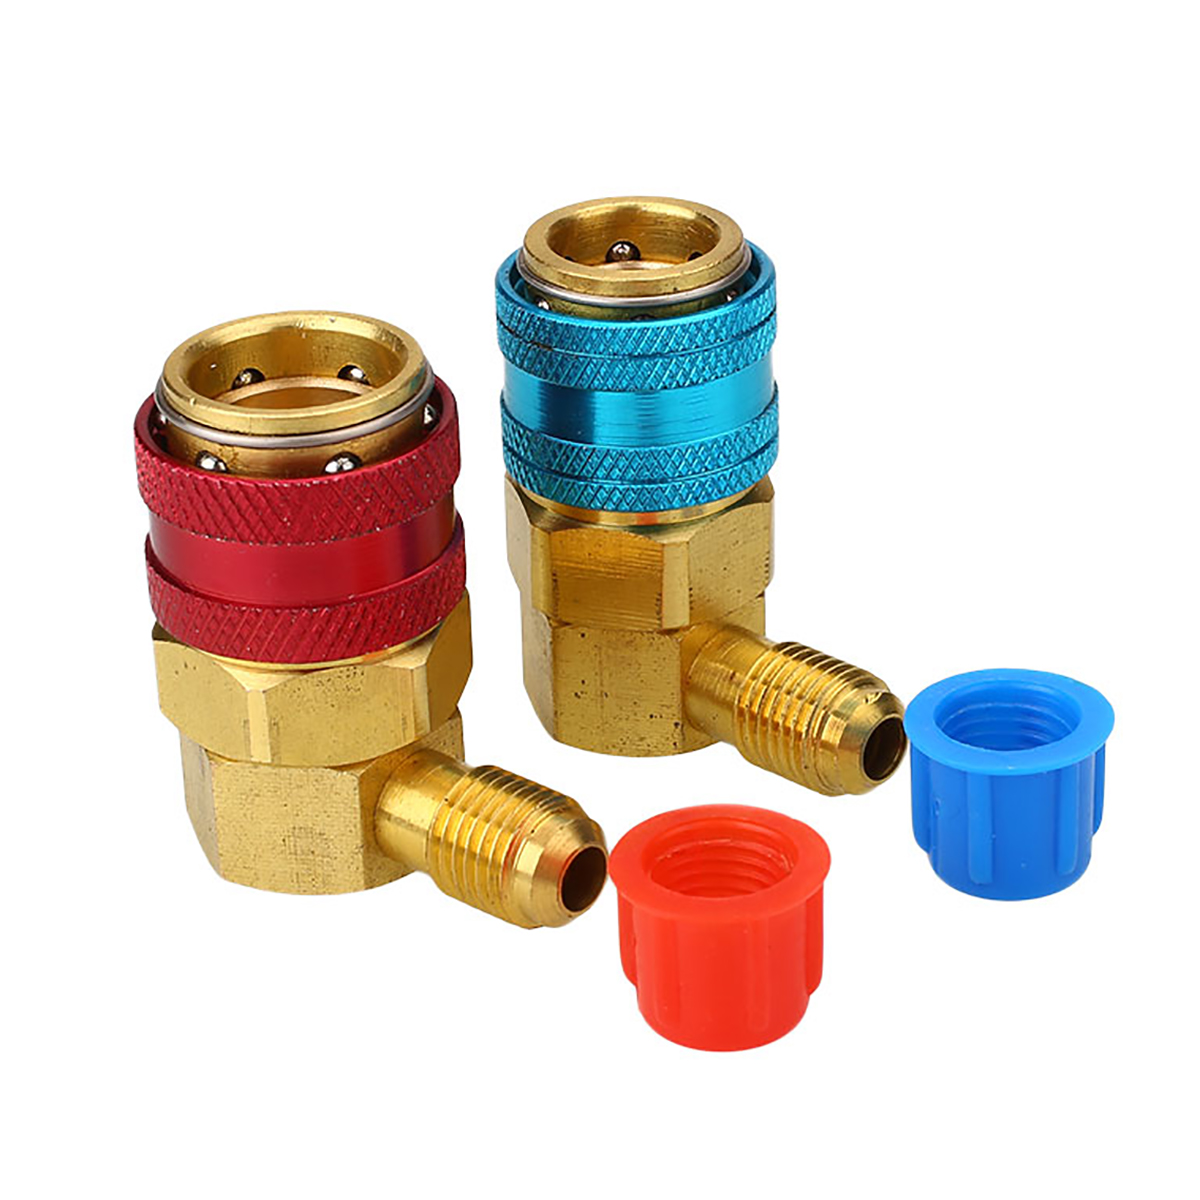 1 Pair Brass AC R134A System Adapters 1/4 SAE Male Mayitr Car Automotive Air Conditioning Quick Connector Adapters Couplers a c system adjustable air conditioner quick couplers connector burgundy for car